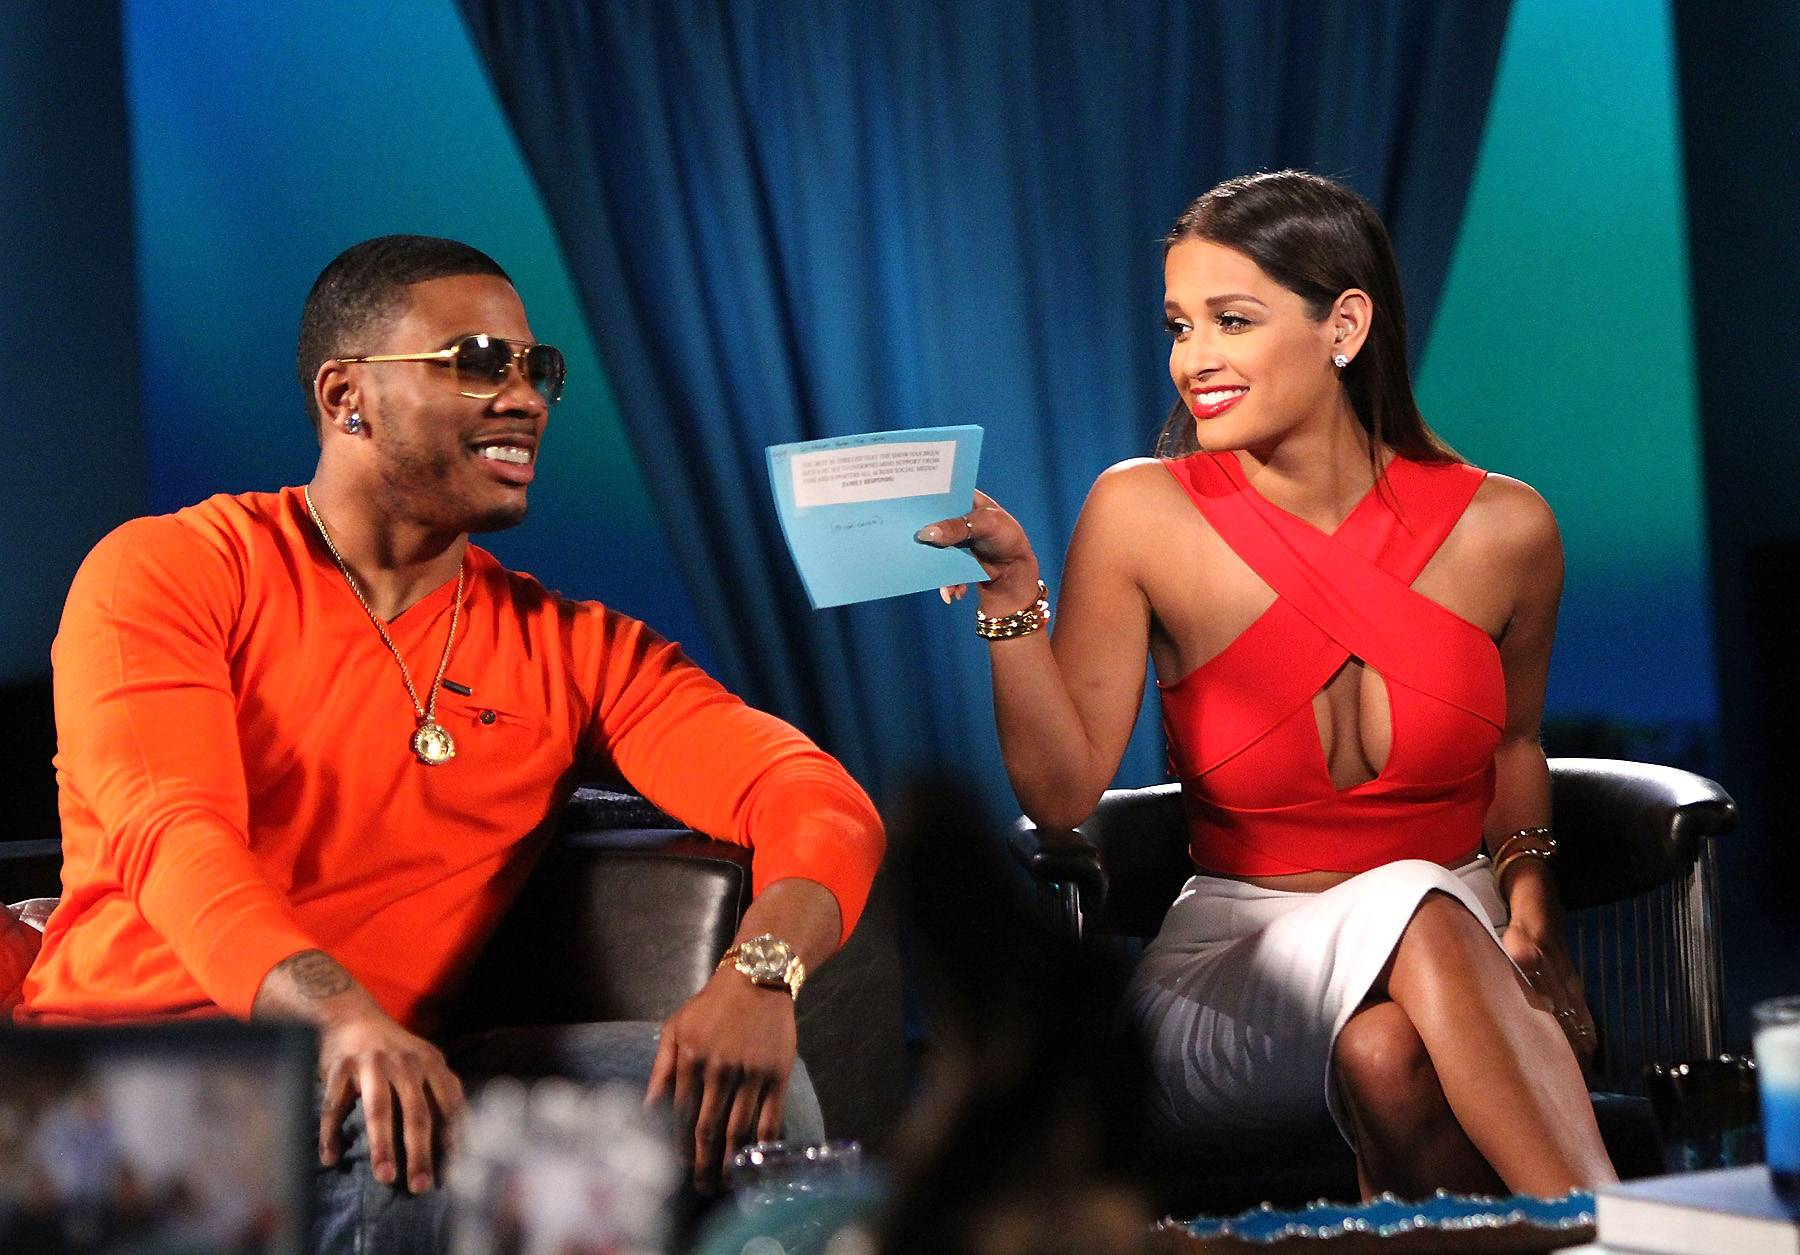 Don't Mess With Rocsi - Nelly and Rocsi share a super playful moment during the show's reunion. (Photo: Maury Phillips/WireImage)